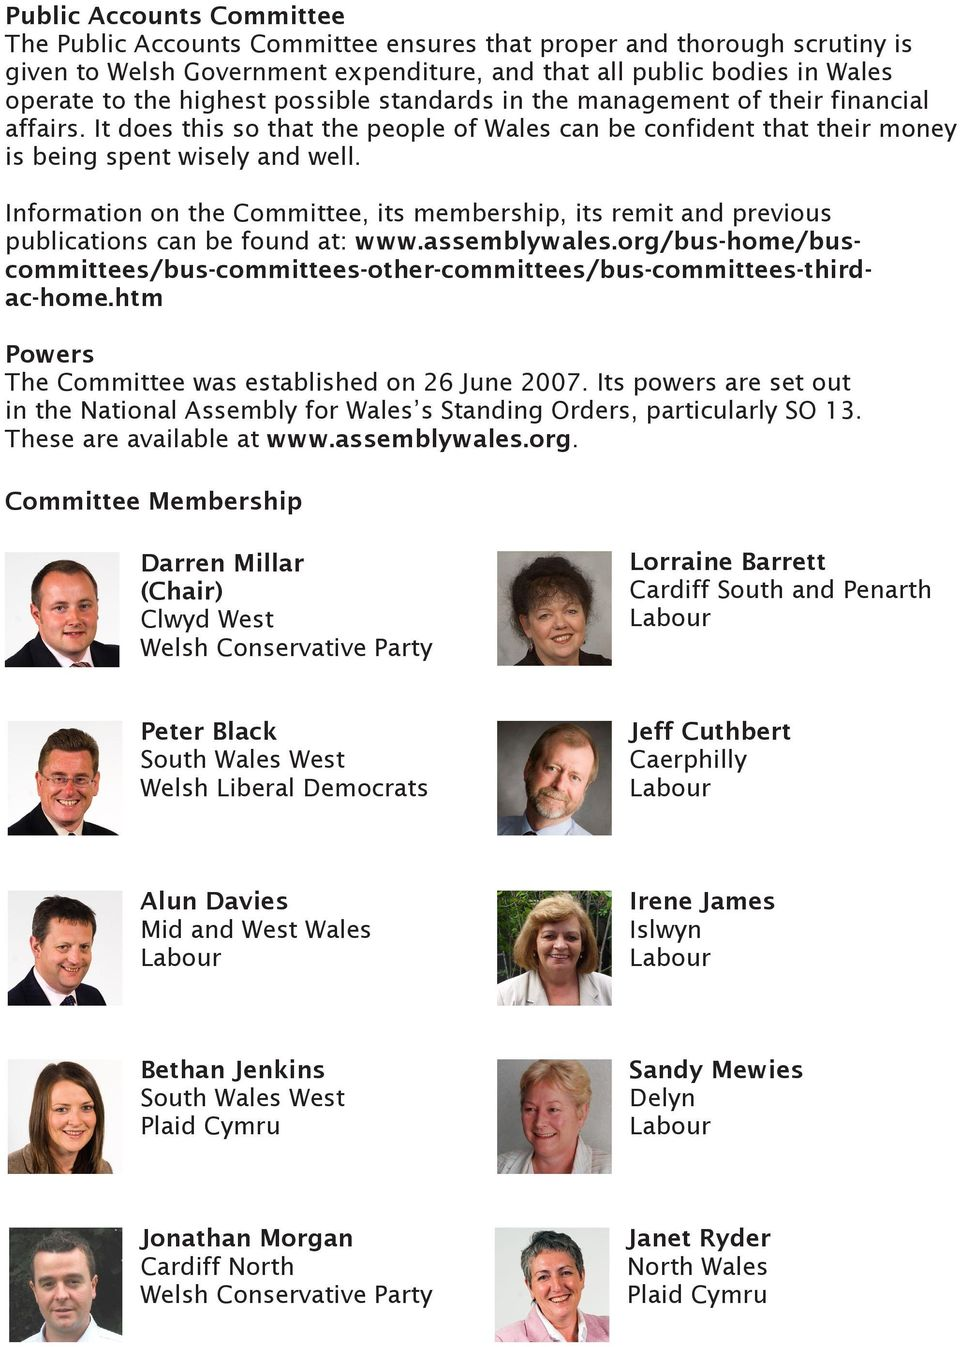 Information on the Committee, its membership, its remit and previous publications can be found at: www.assemblywales.